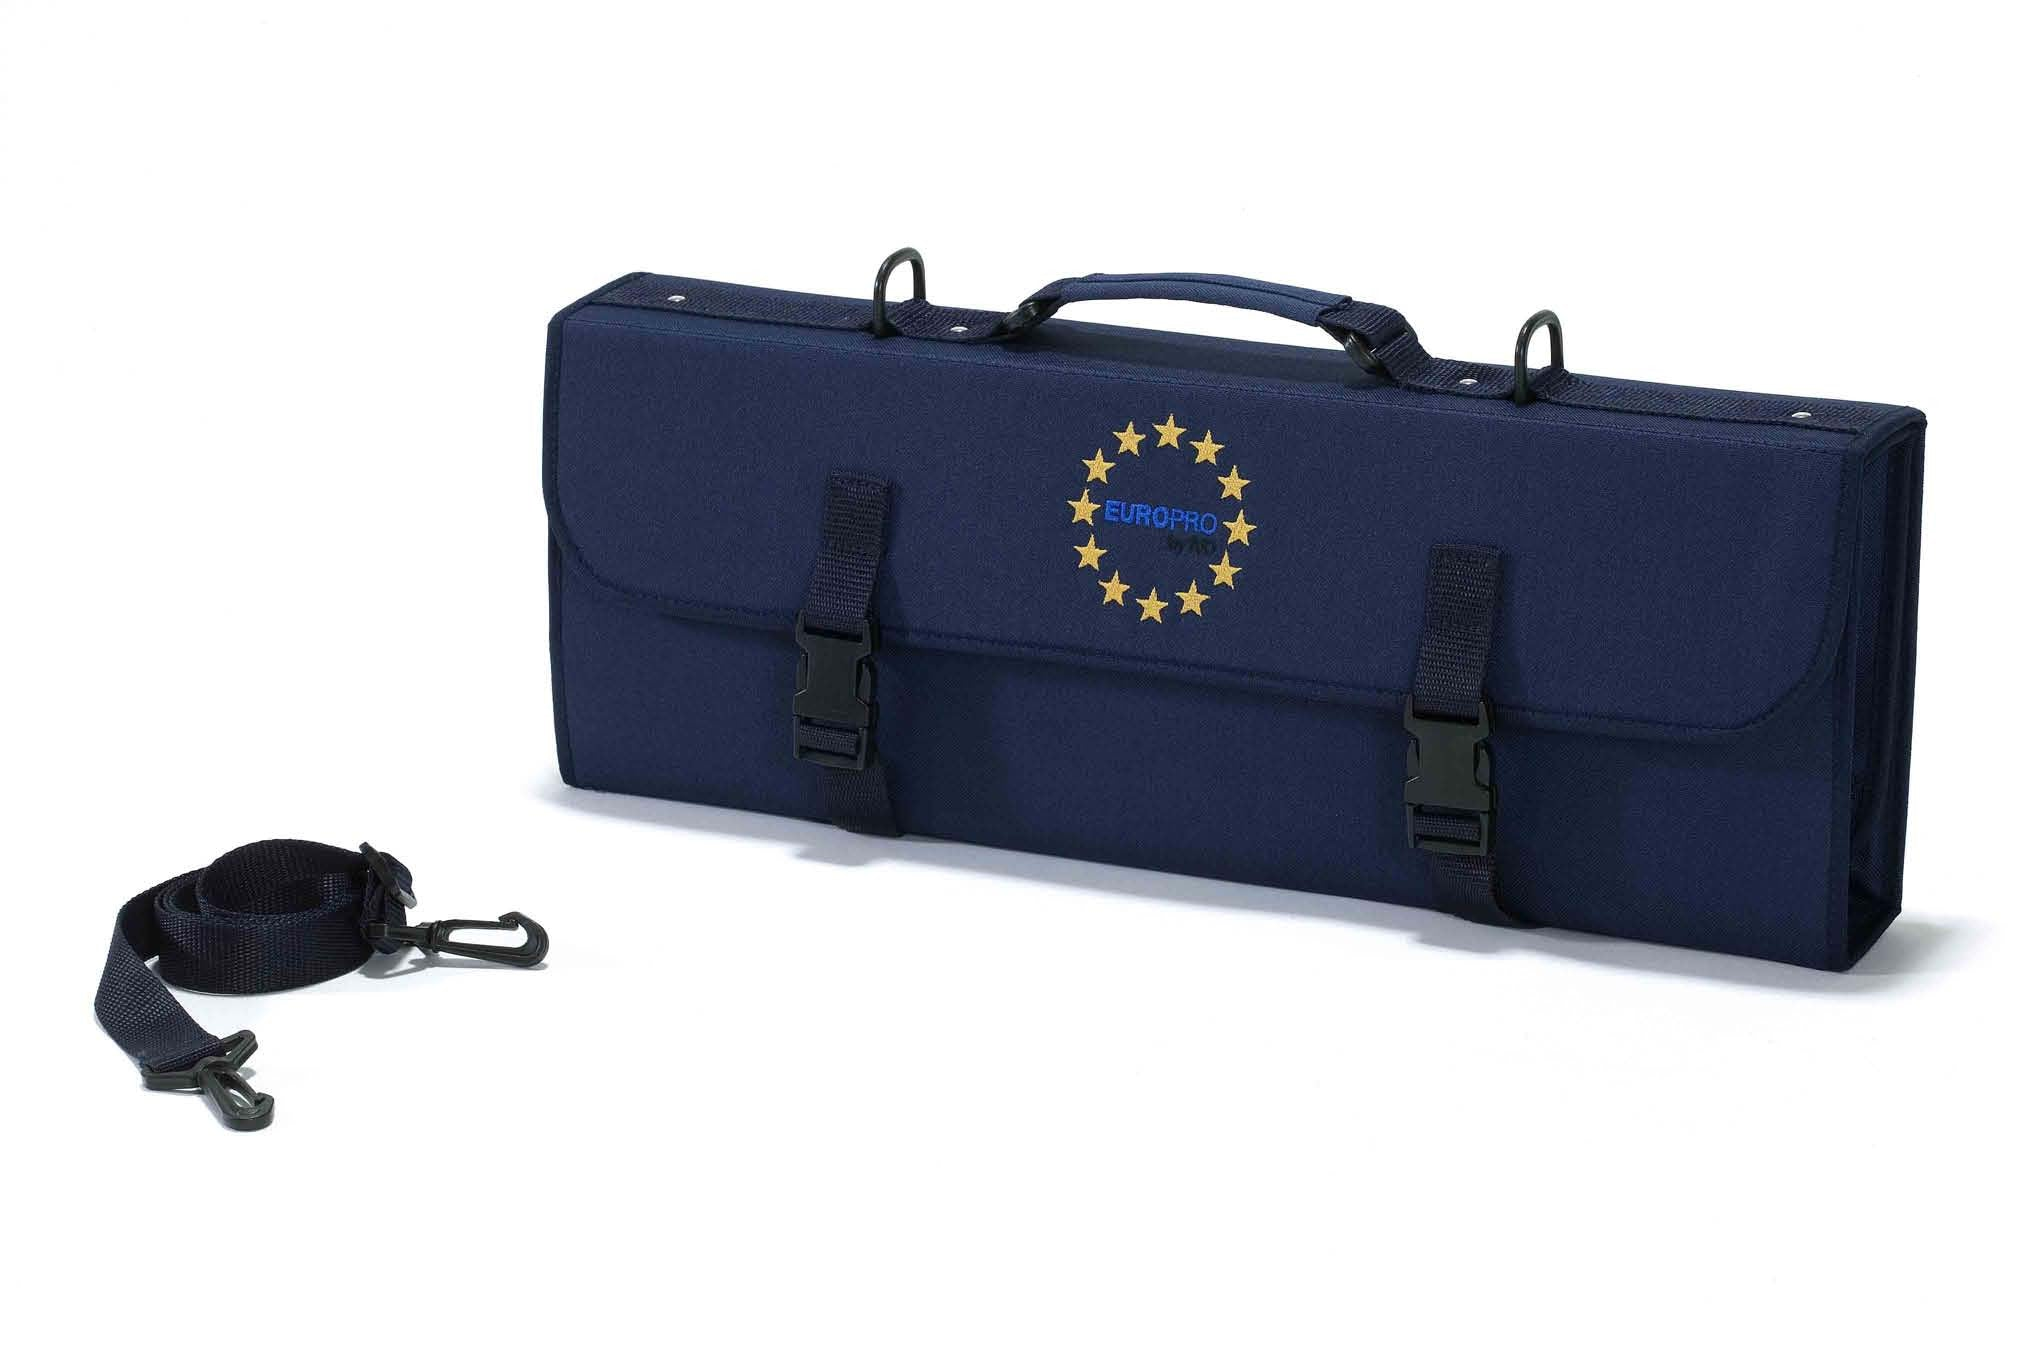 Europrofessional Knife Bag